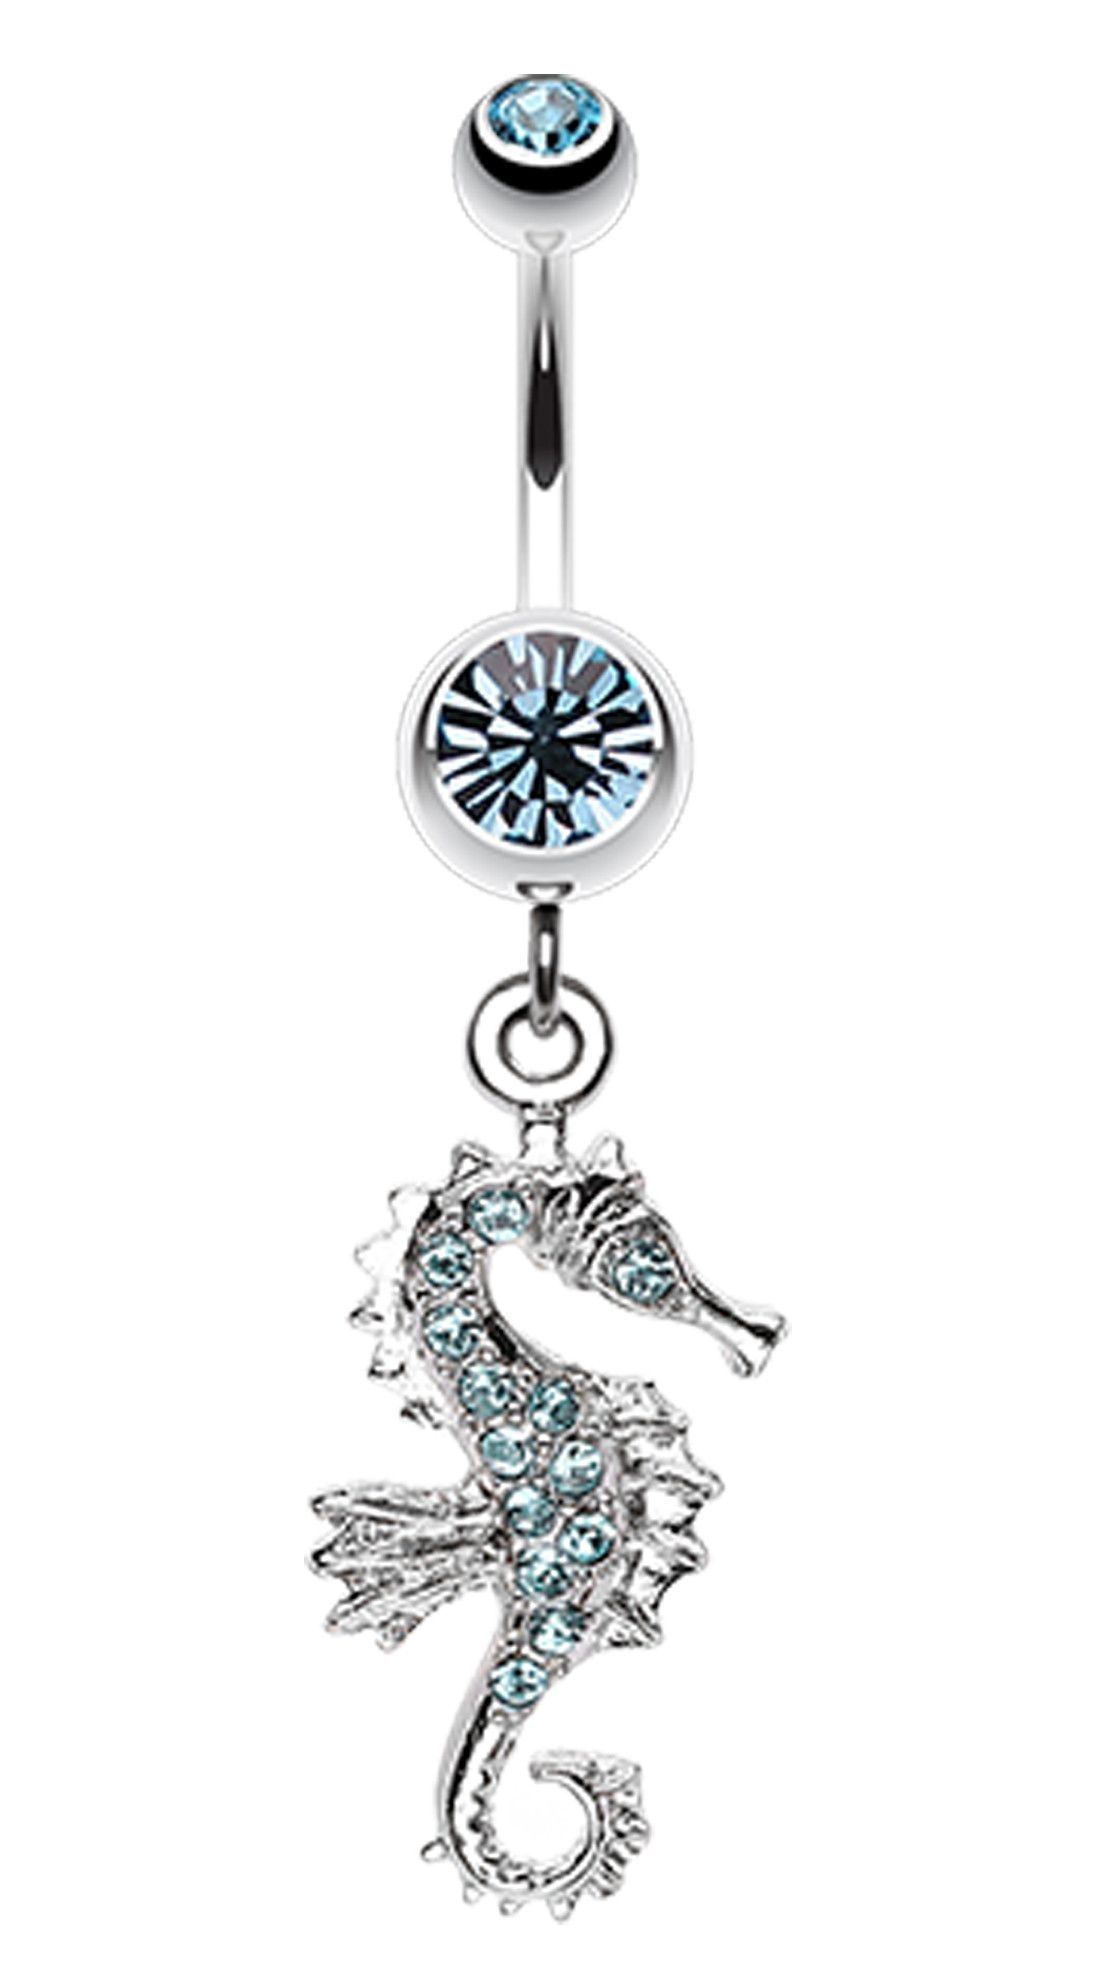 Belly button piercing without jewelry  Sparkling Seahorse Dangle Belly Button Ring  Belly button rings